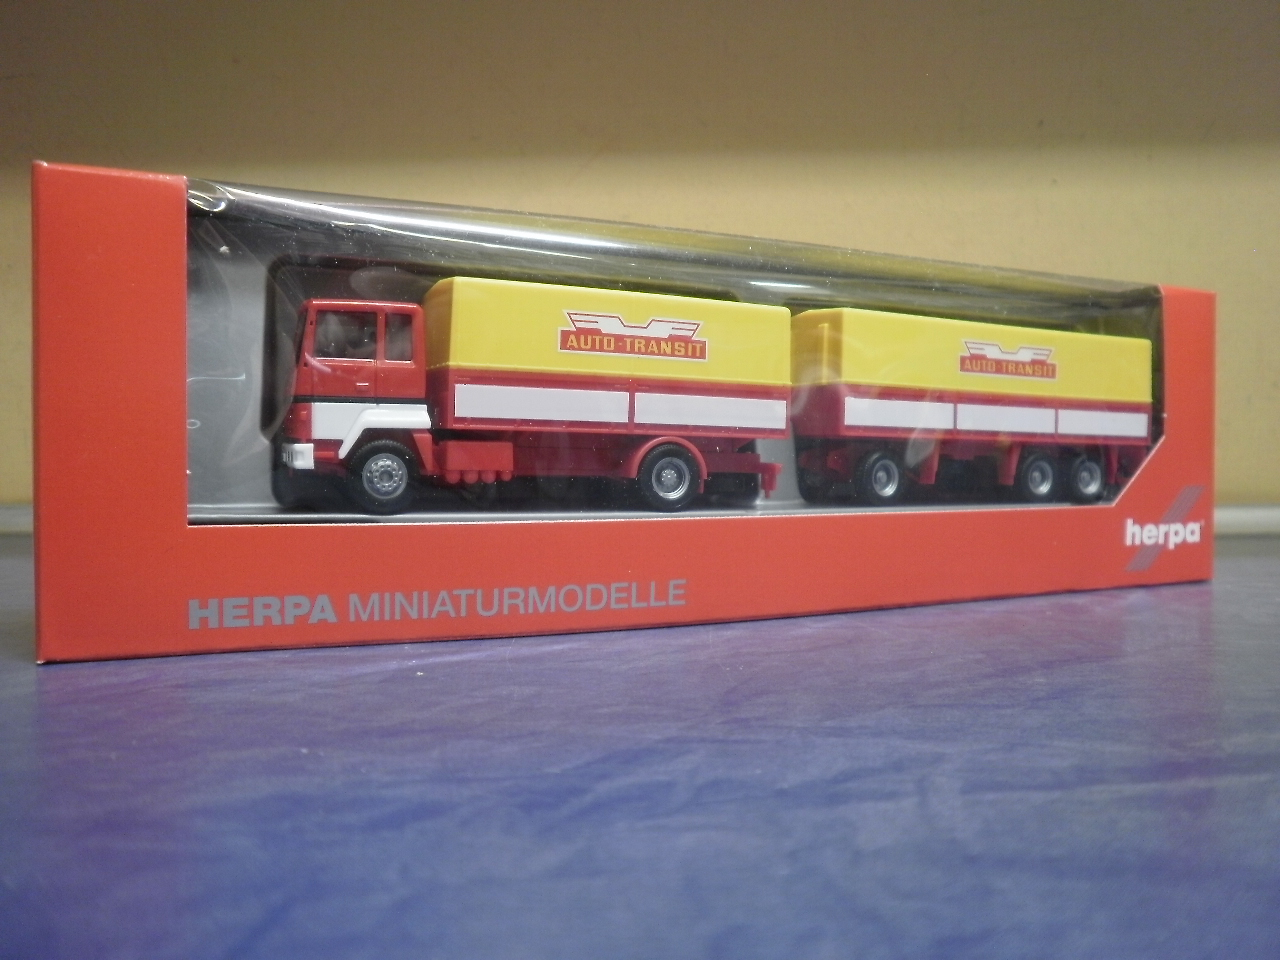 Herpa LKW Ford Transcontinental PrHz Autotransit 308021